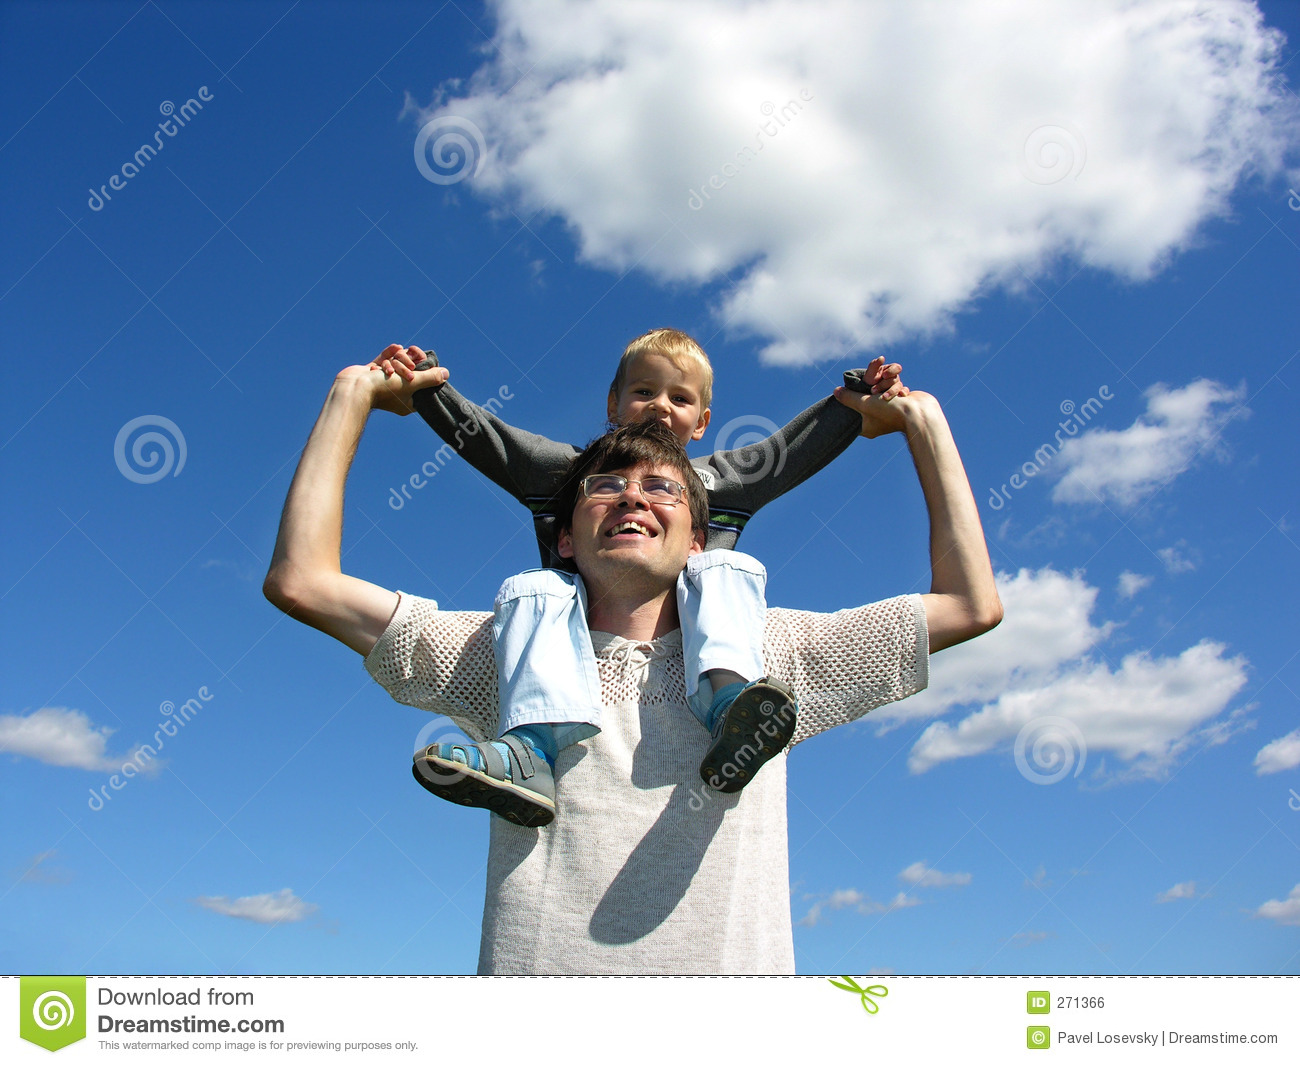 Father with son on shoulders sunny day 2